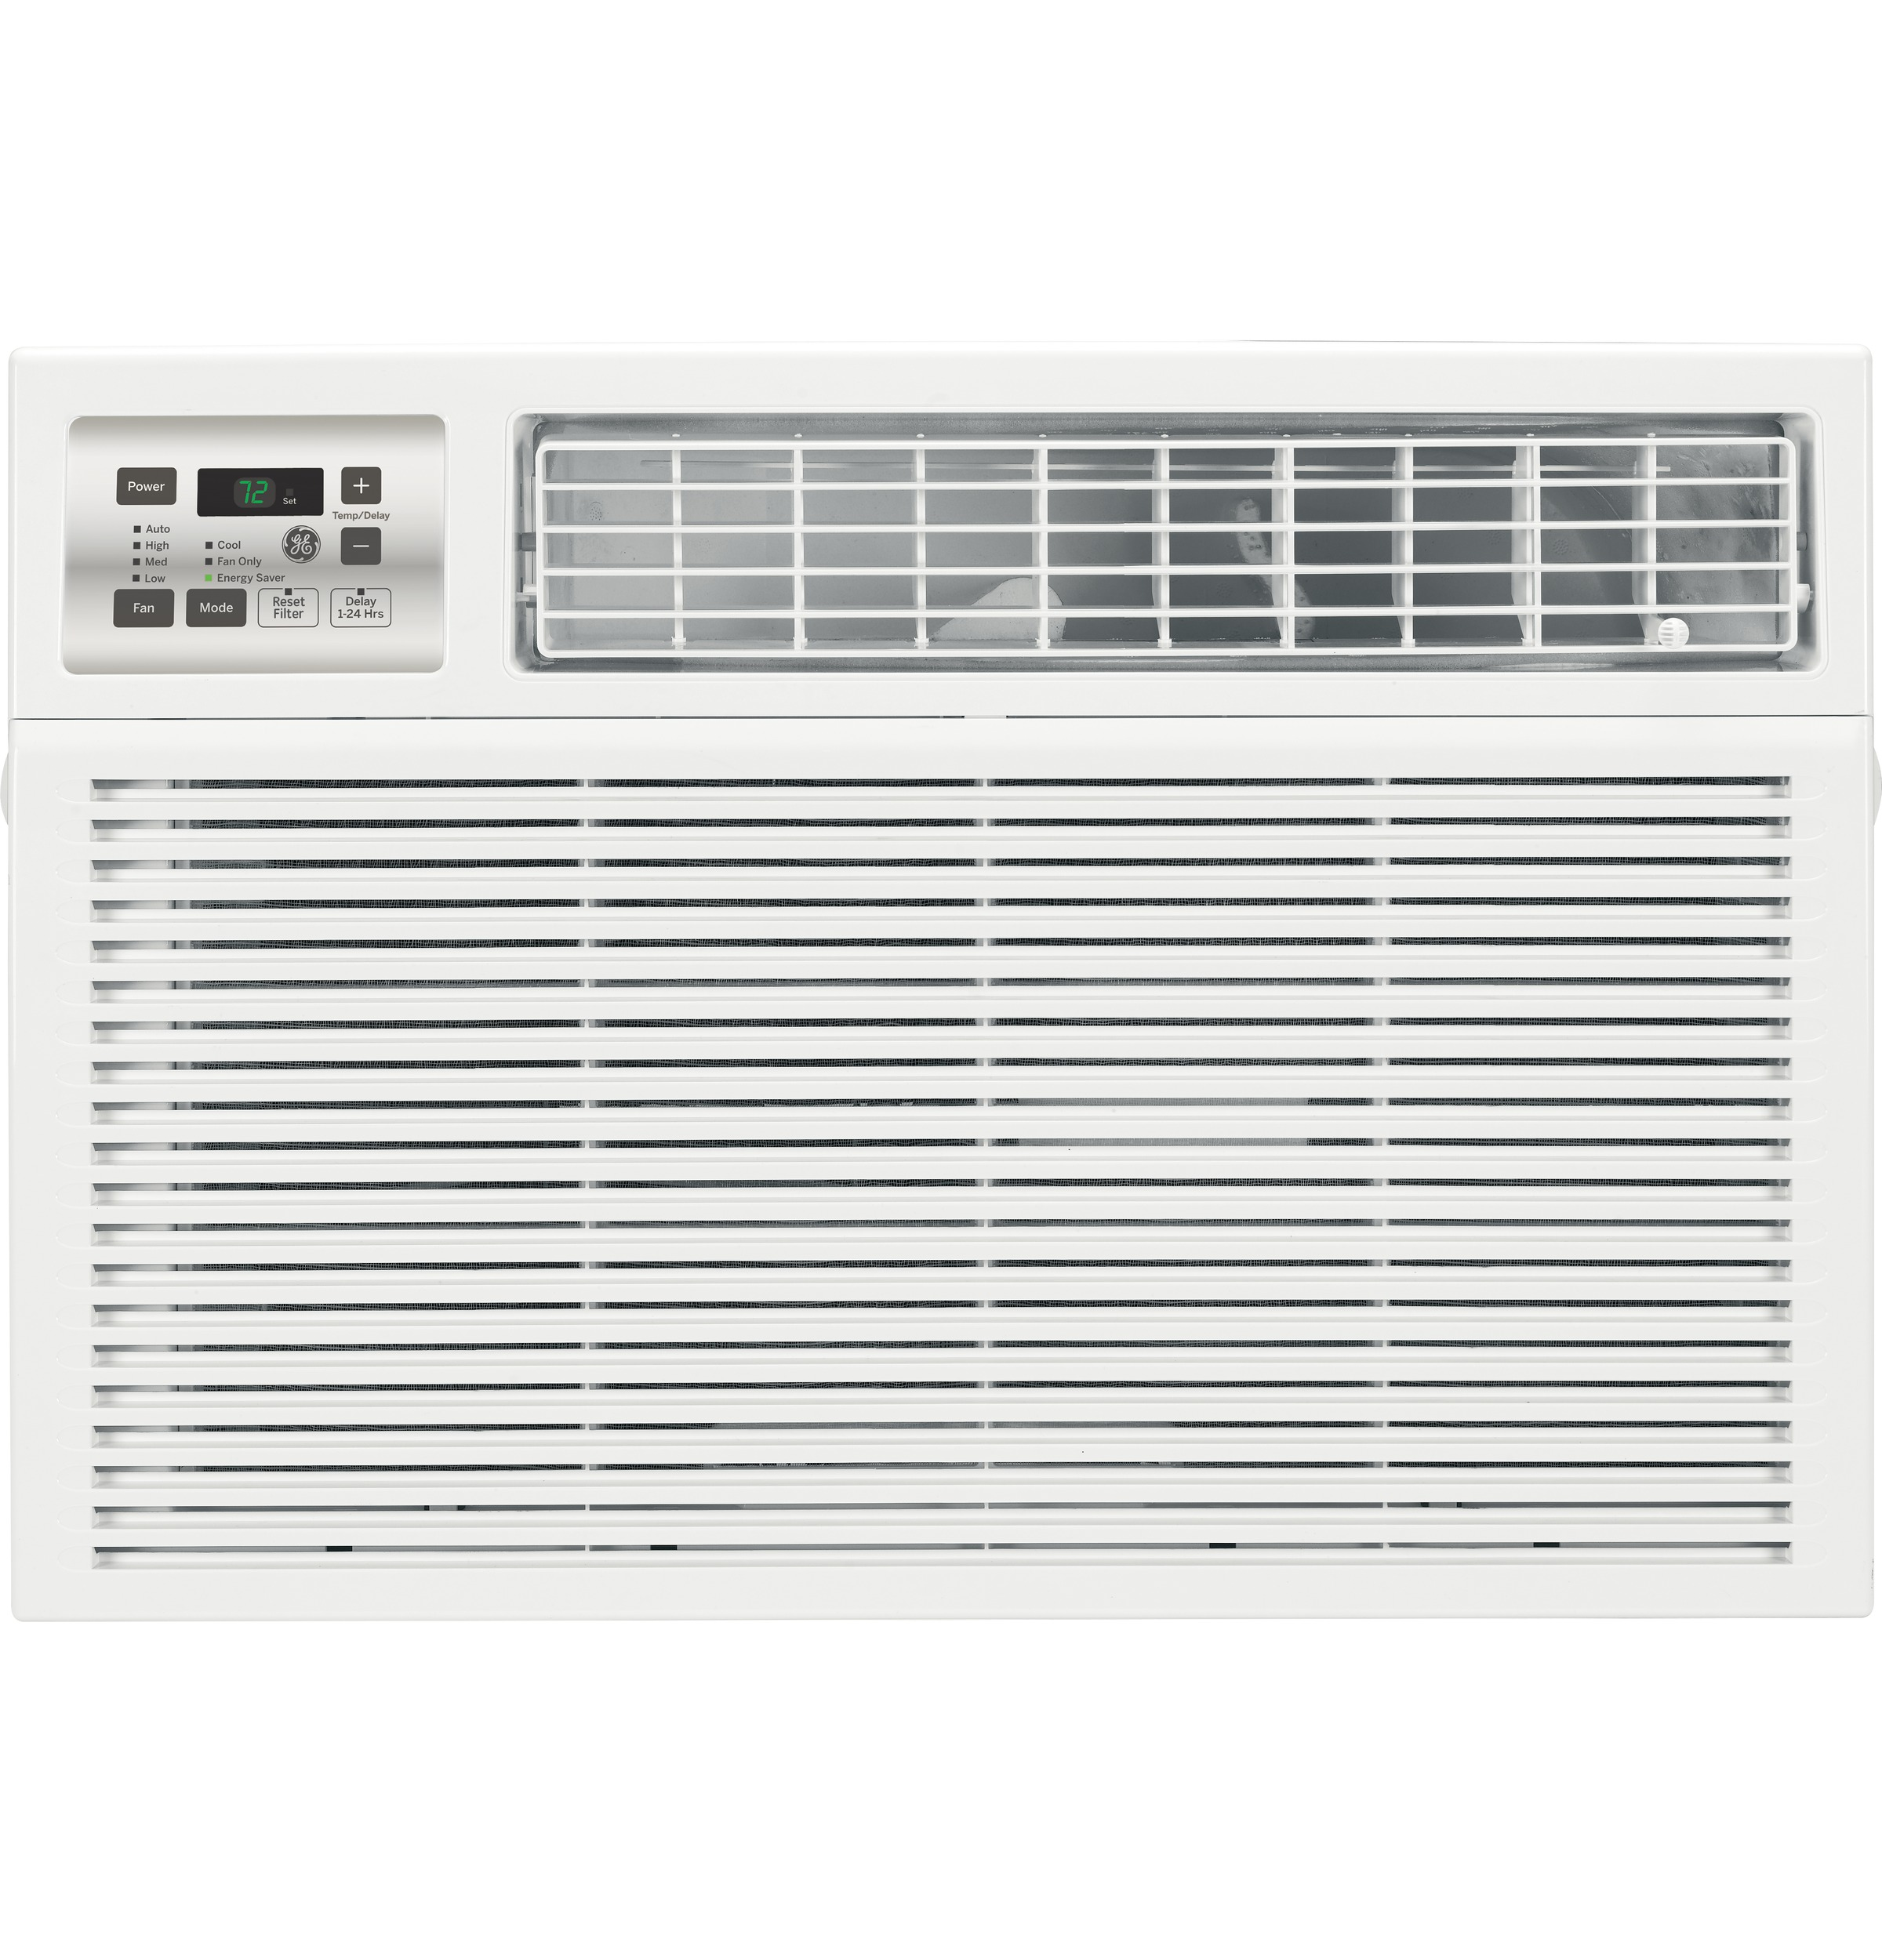 ® 230 Volt Electronic Room Air Conditioner AEW24DT GE Appliances #4F5456